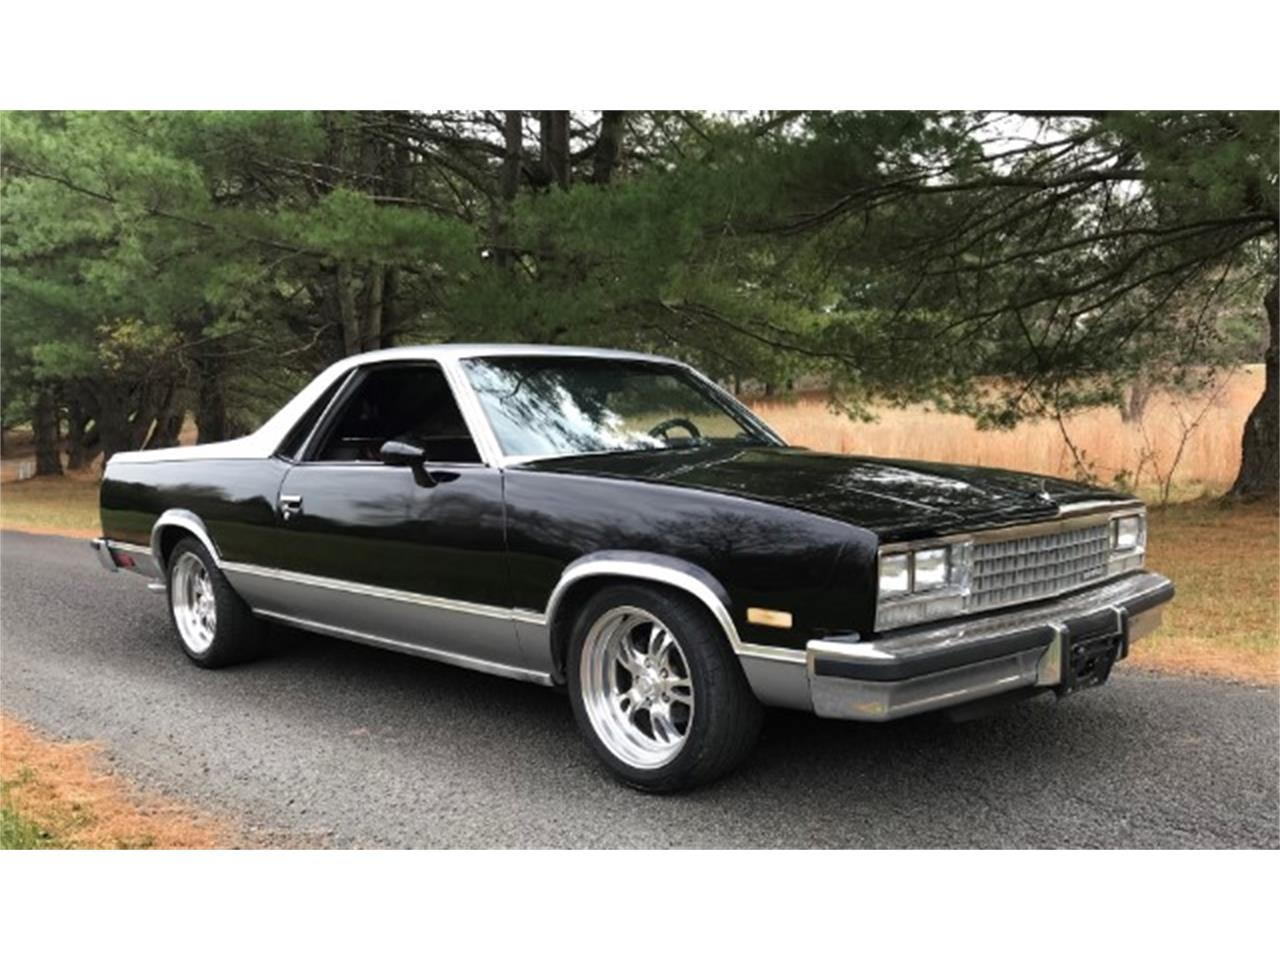 1984 Chevrolet El Camino (CC-1268268) for sale in Harpers Ferry, West Virginia